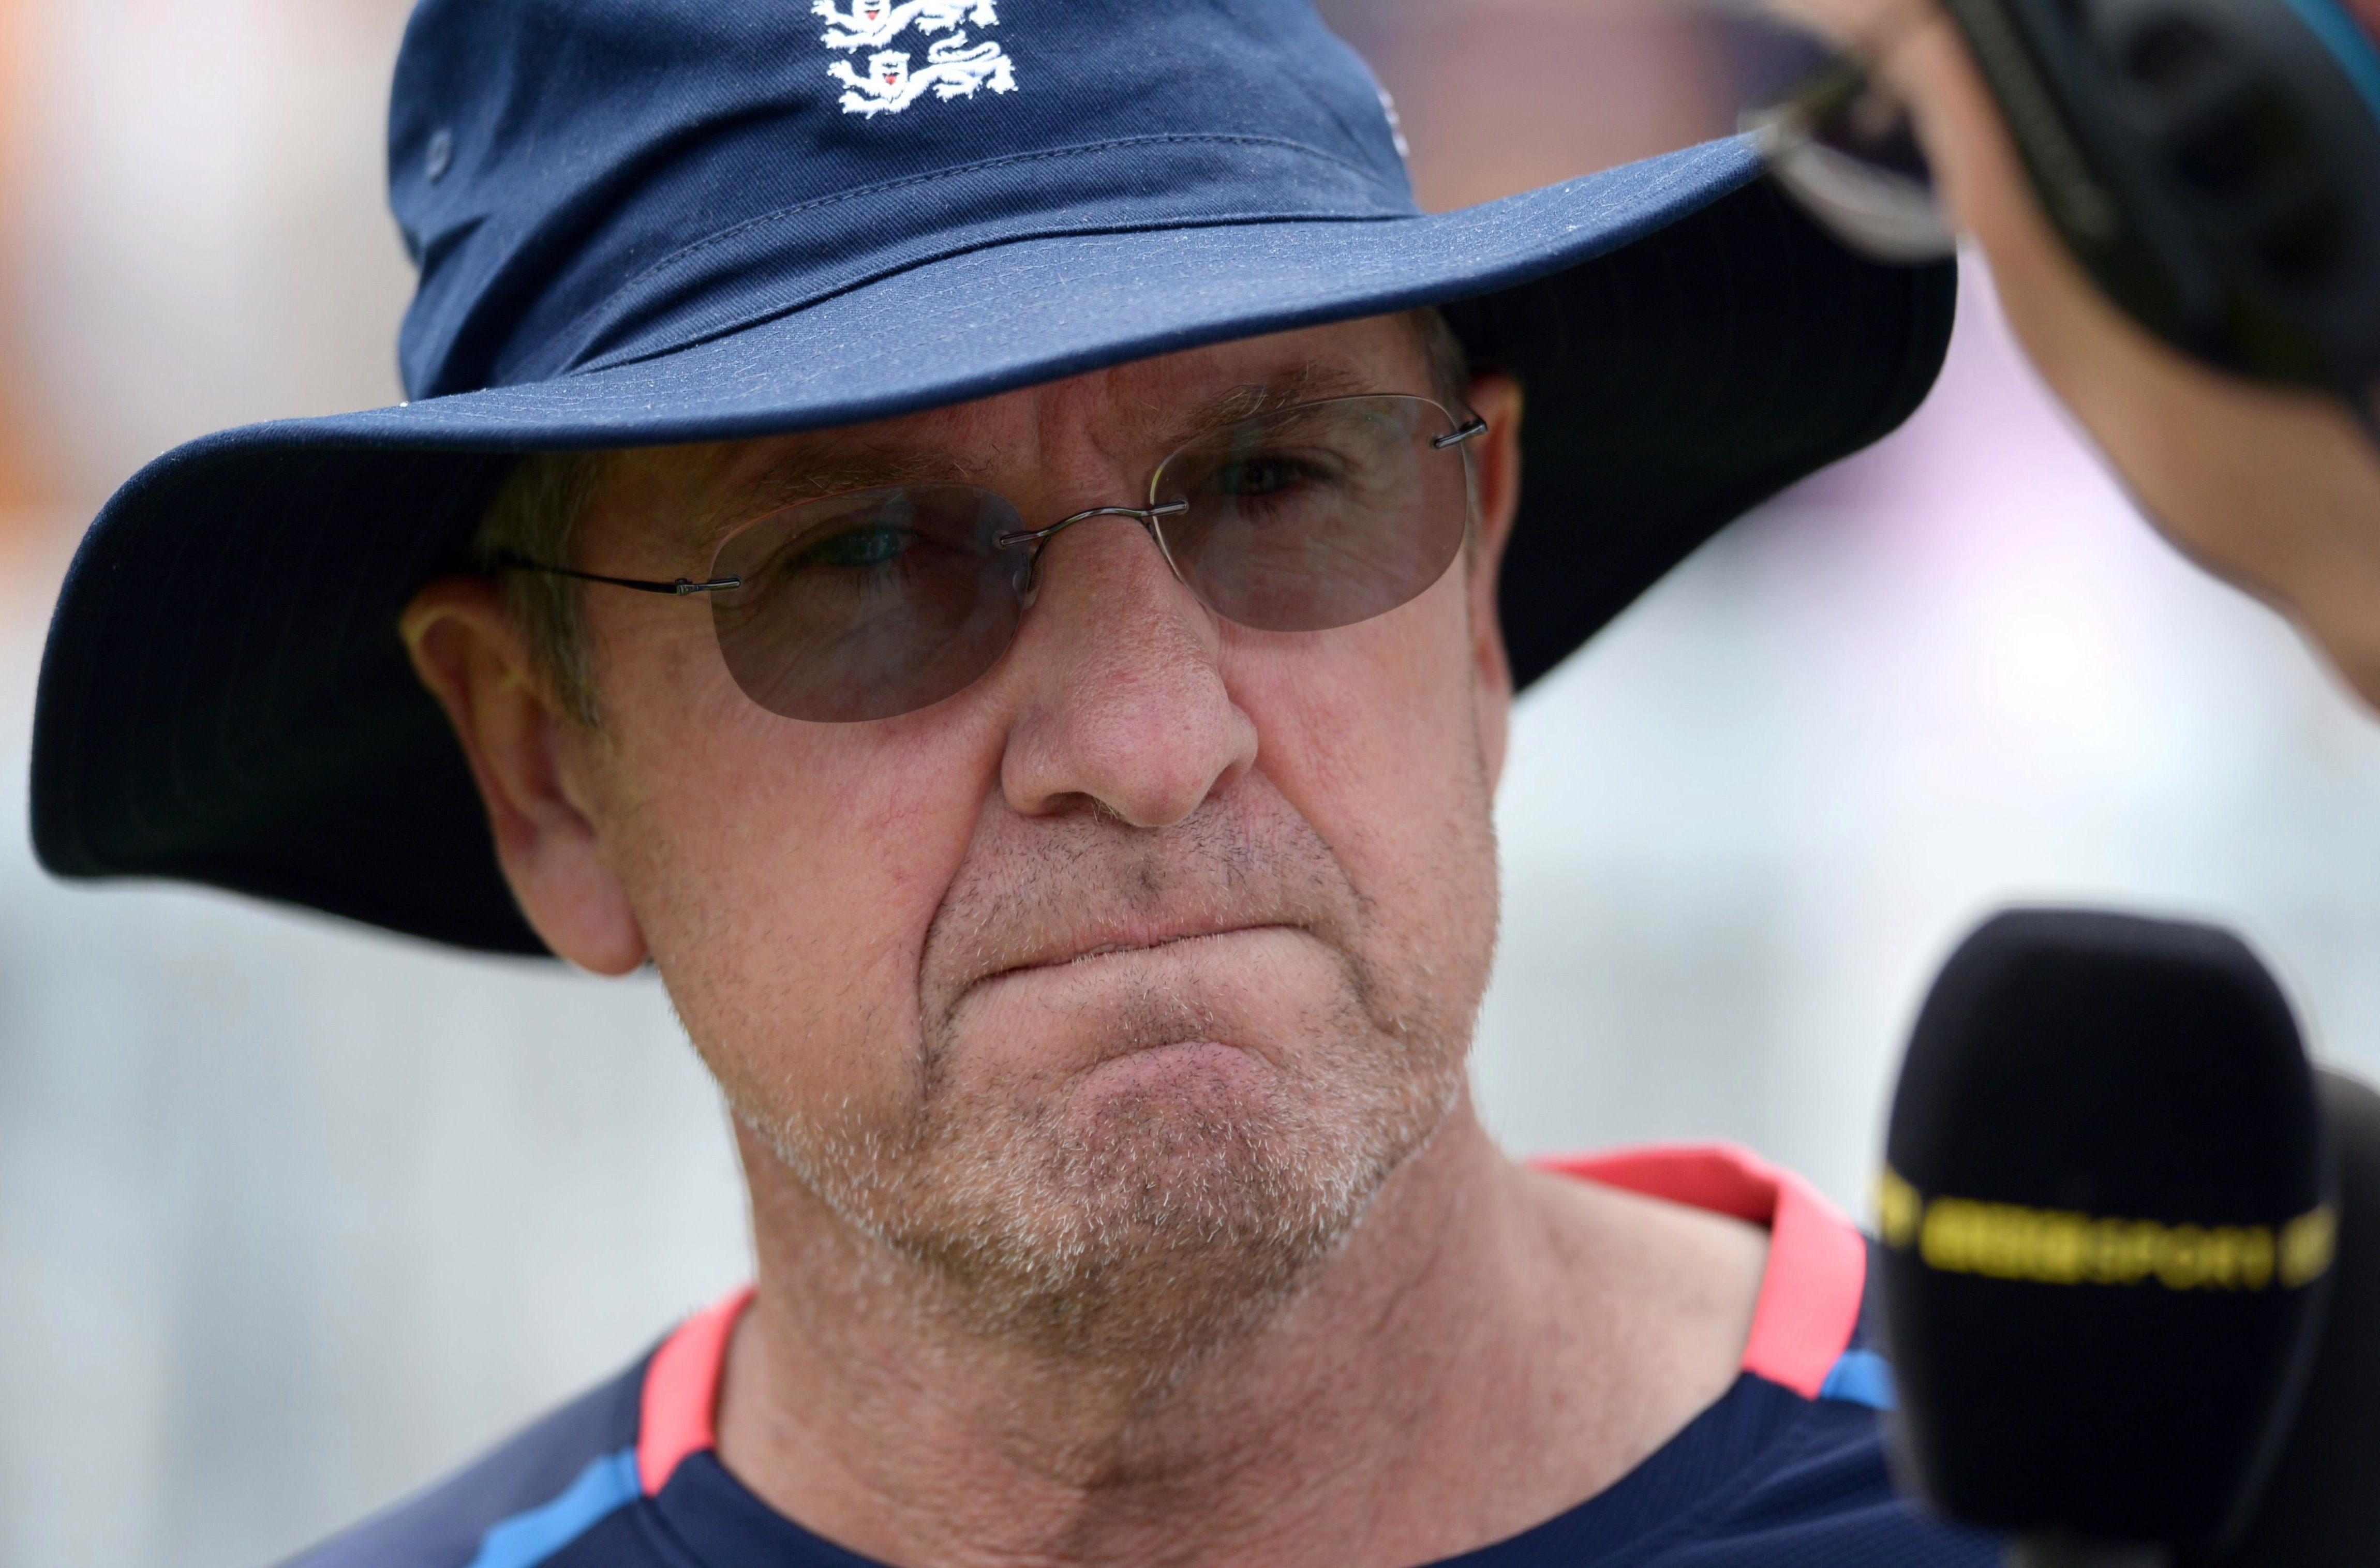 England coach Trevor Bayliss described the allegations as 'outrageous'